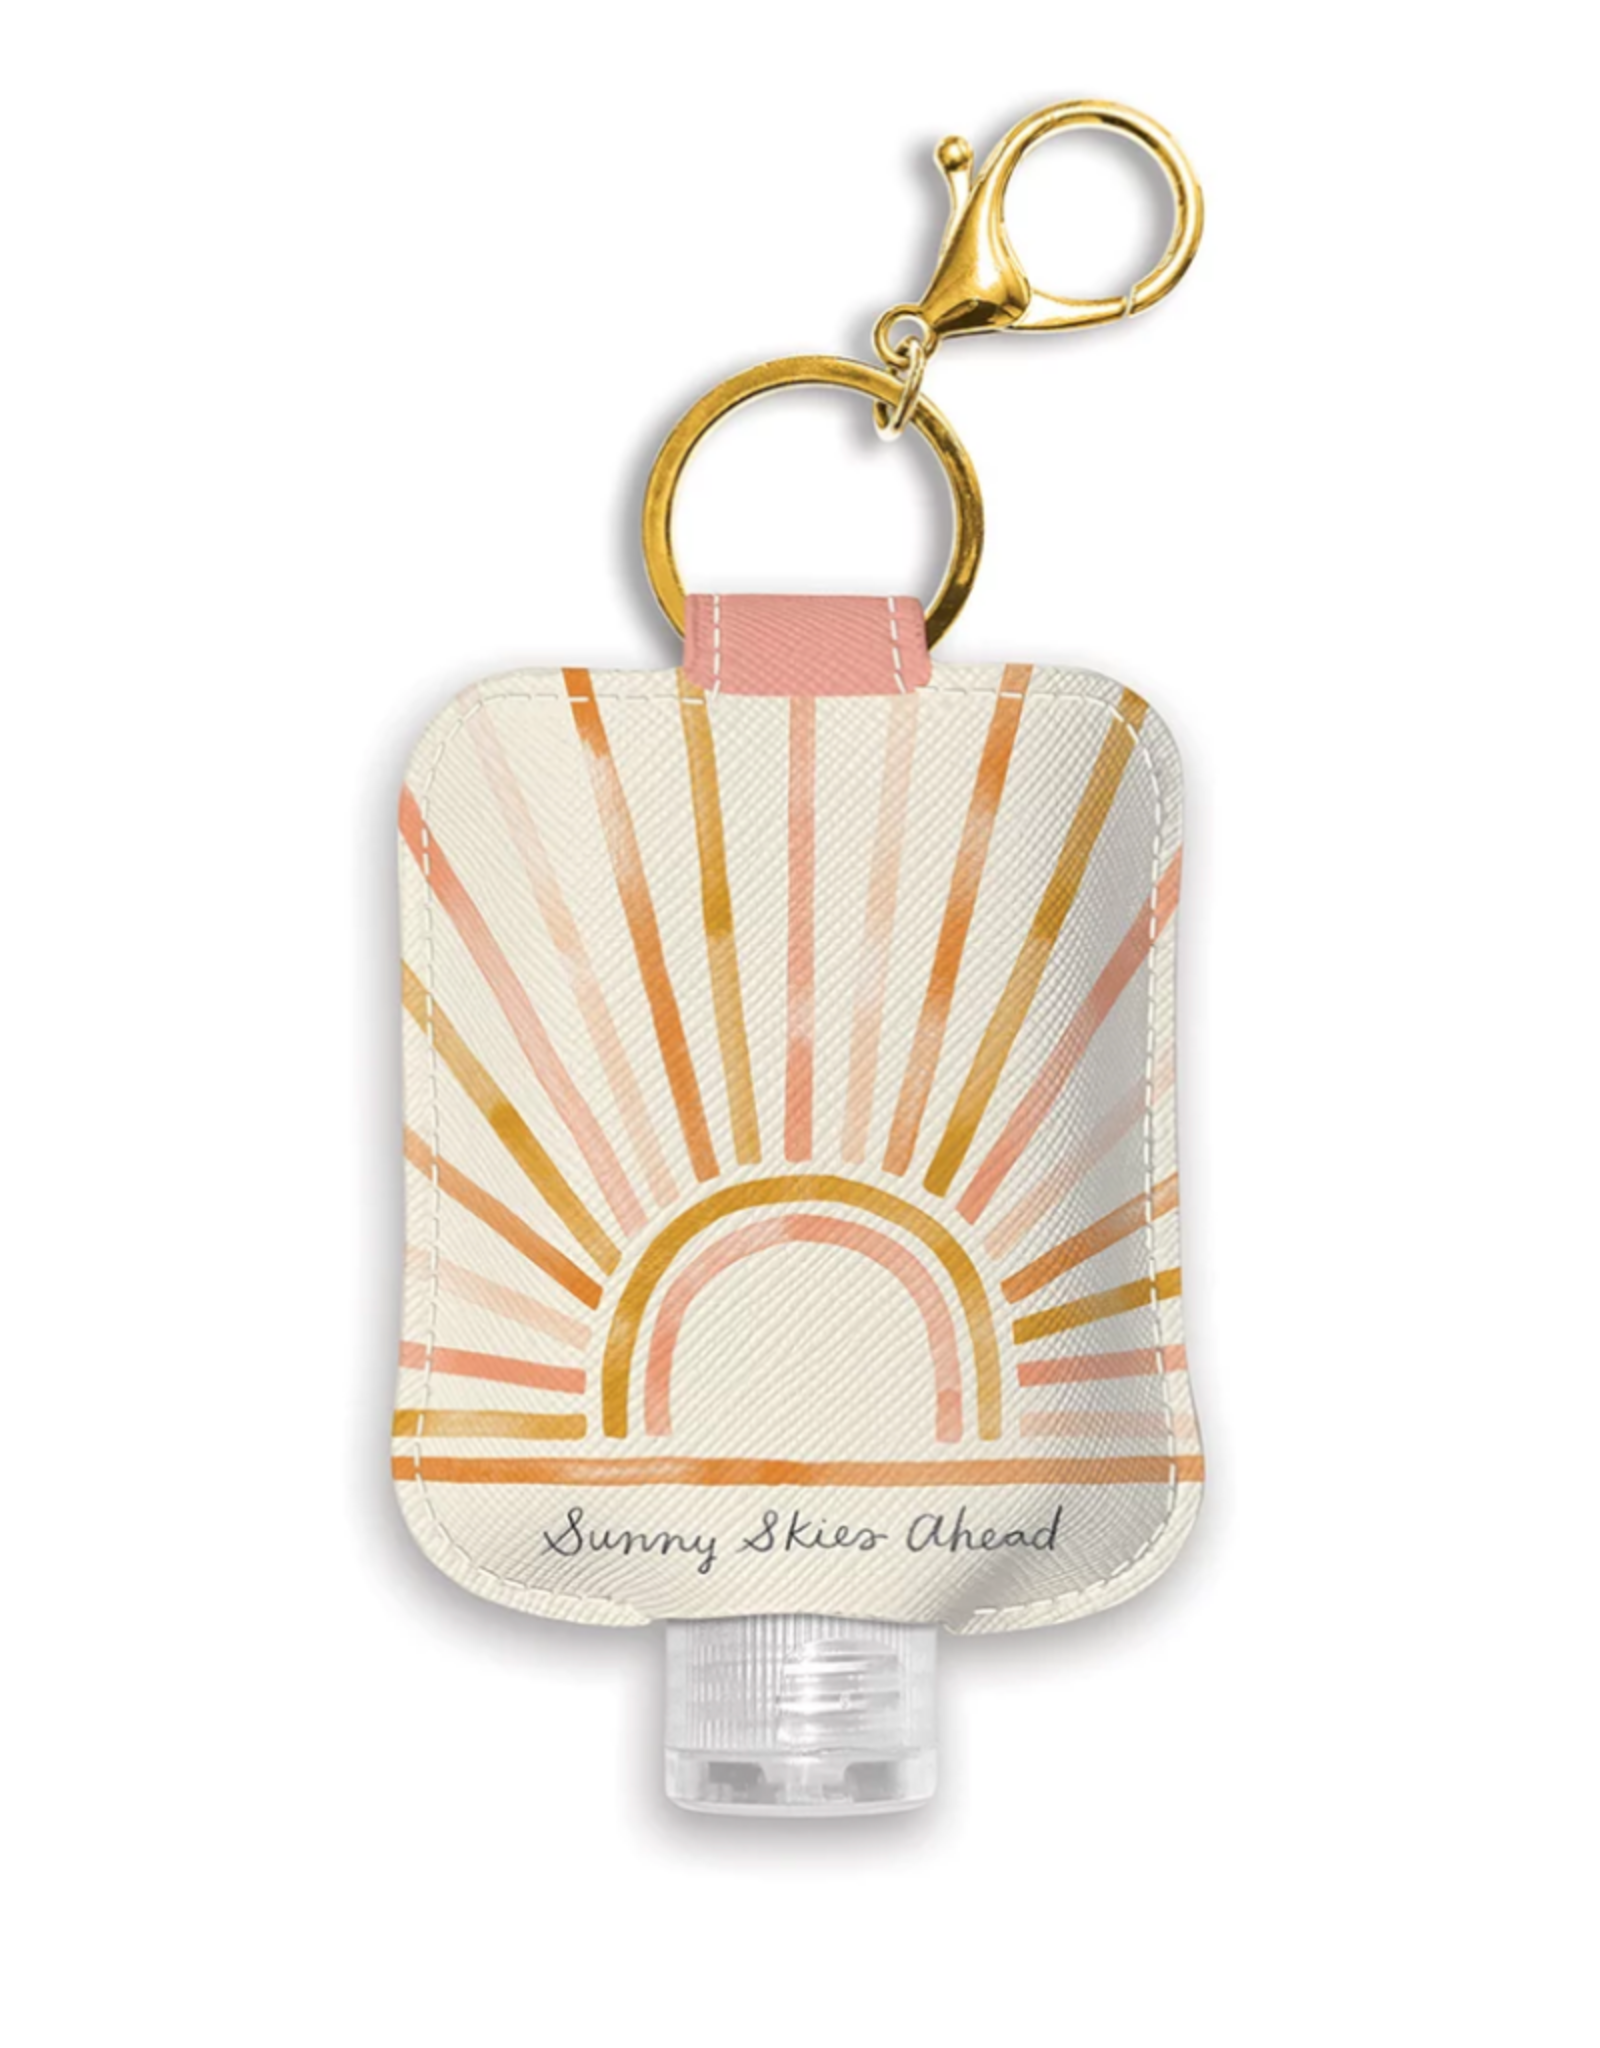 Sunny Skies Ahead Hand Sanitizer Holder with Bottle